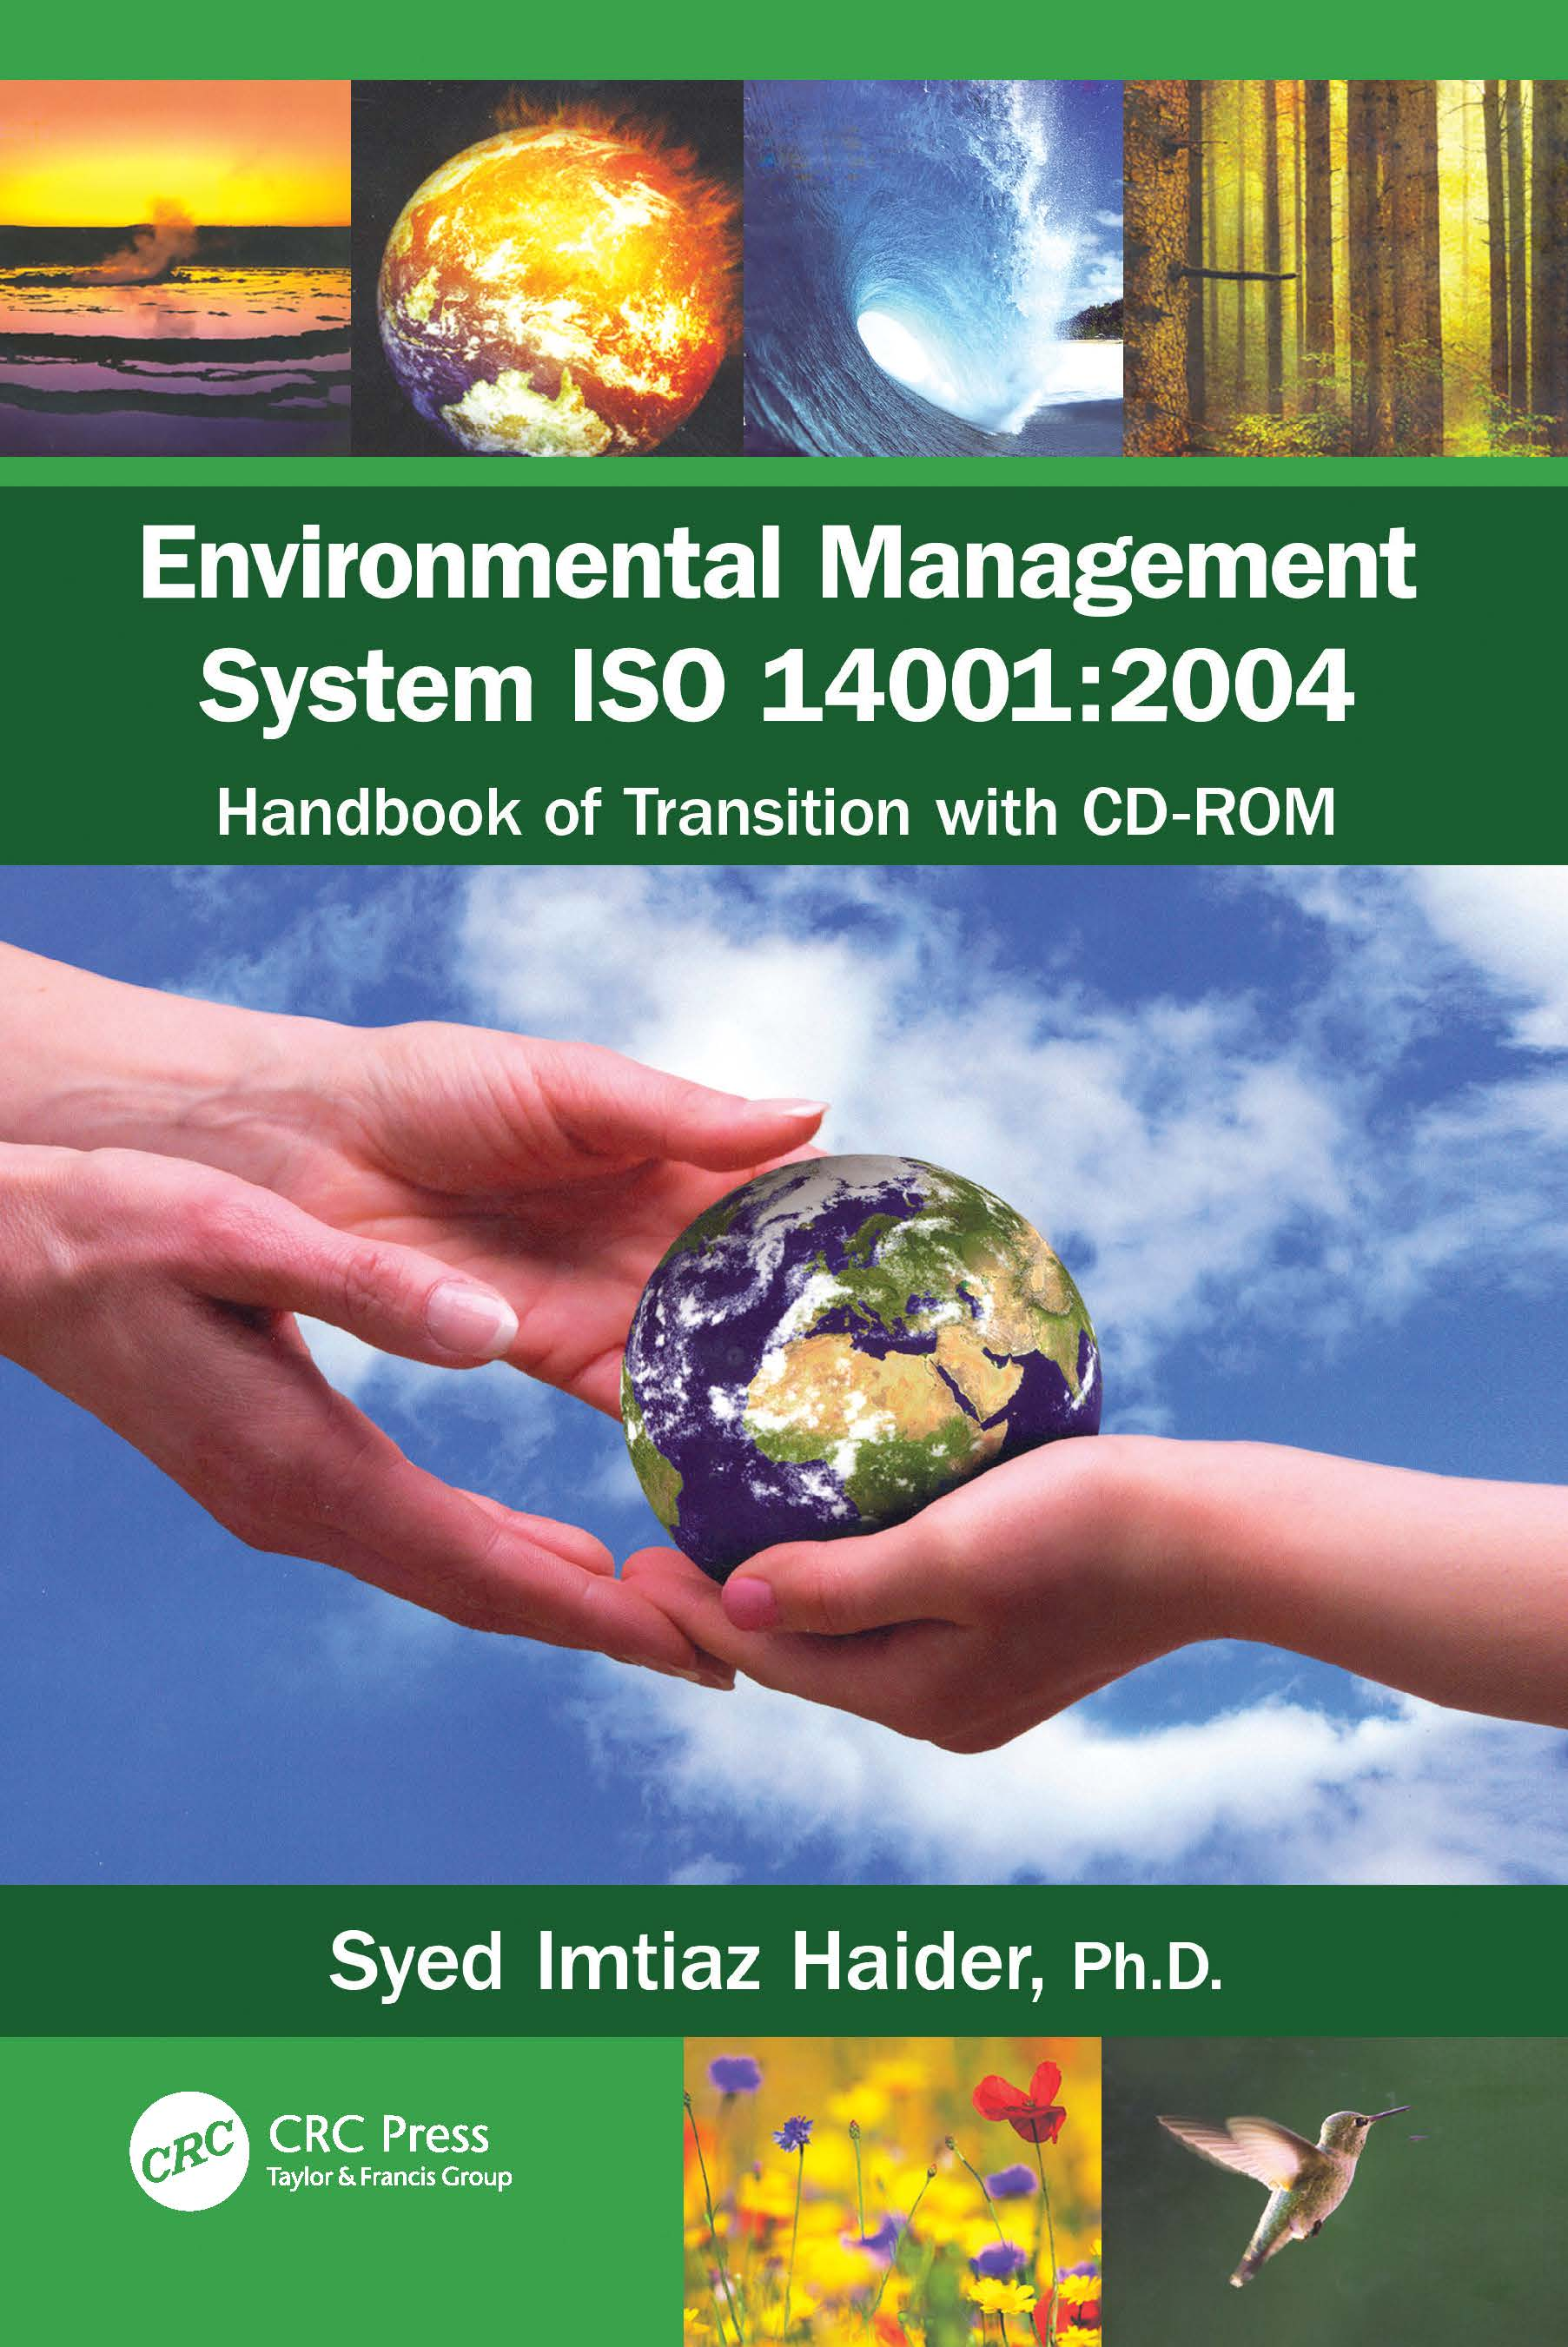 Environmental Management System ISO 14001: 2004: Handbook of Transition with CD-ROM book cover